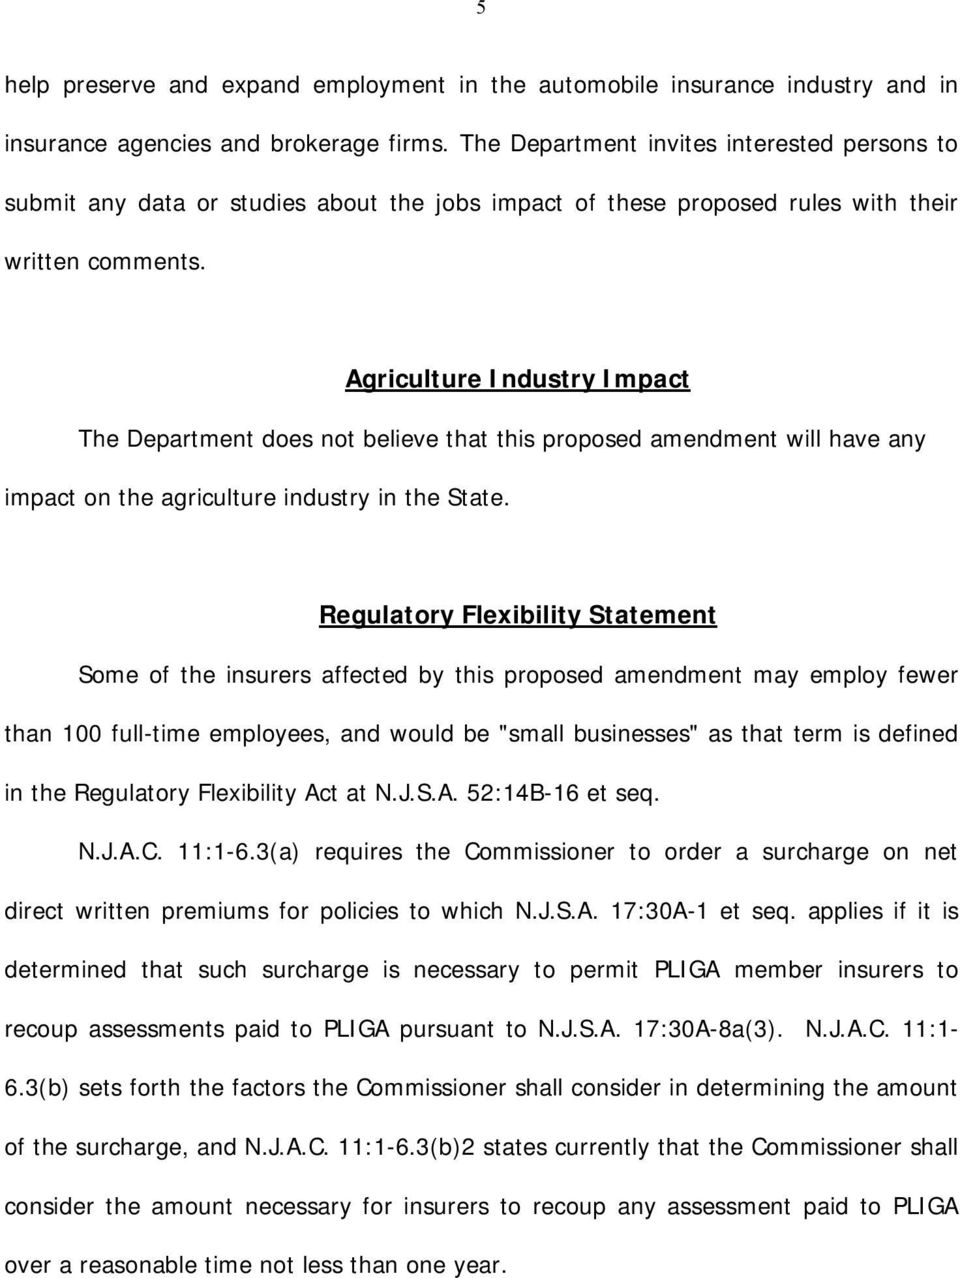 Agriculture Industry Impact The Department does not believe that this proposed amendment will have any impact on the agriculture industry in the State.